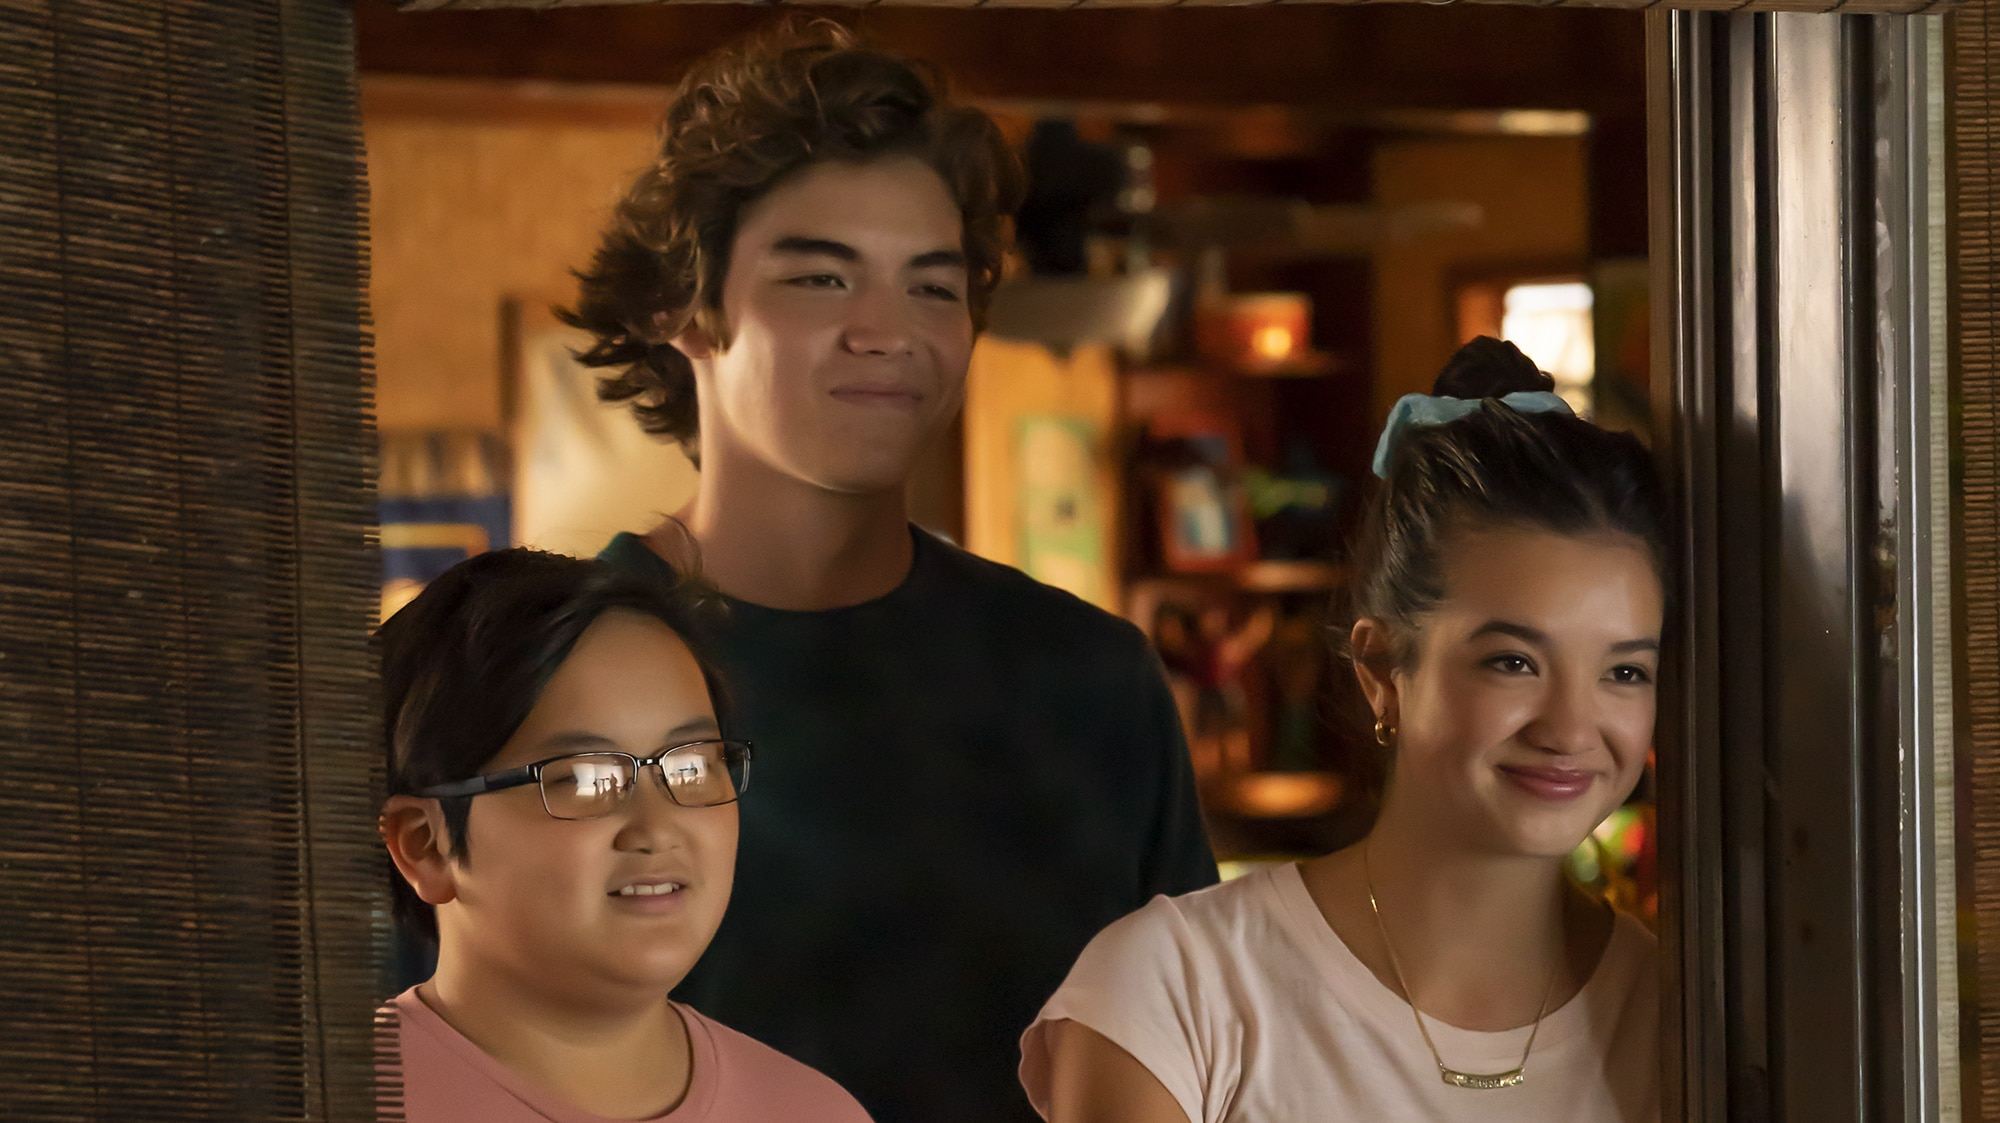 """DOOGIE KAMEALOHA, M.D. - """"License to Not Drive"""" - Yearning for freedom, Lahela defies Clara and takes the family car without permission. (Disney/Karen Neal) WES TIAN, MATTHEW SATO, PEYTON ELIZABETH LEE"""